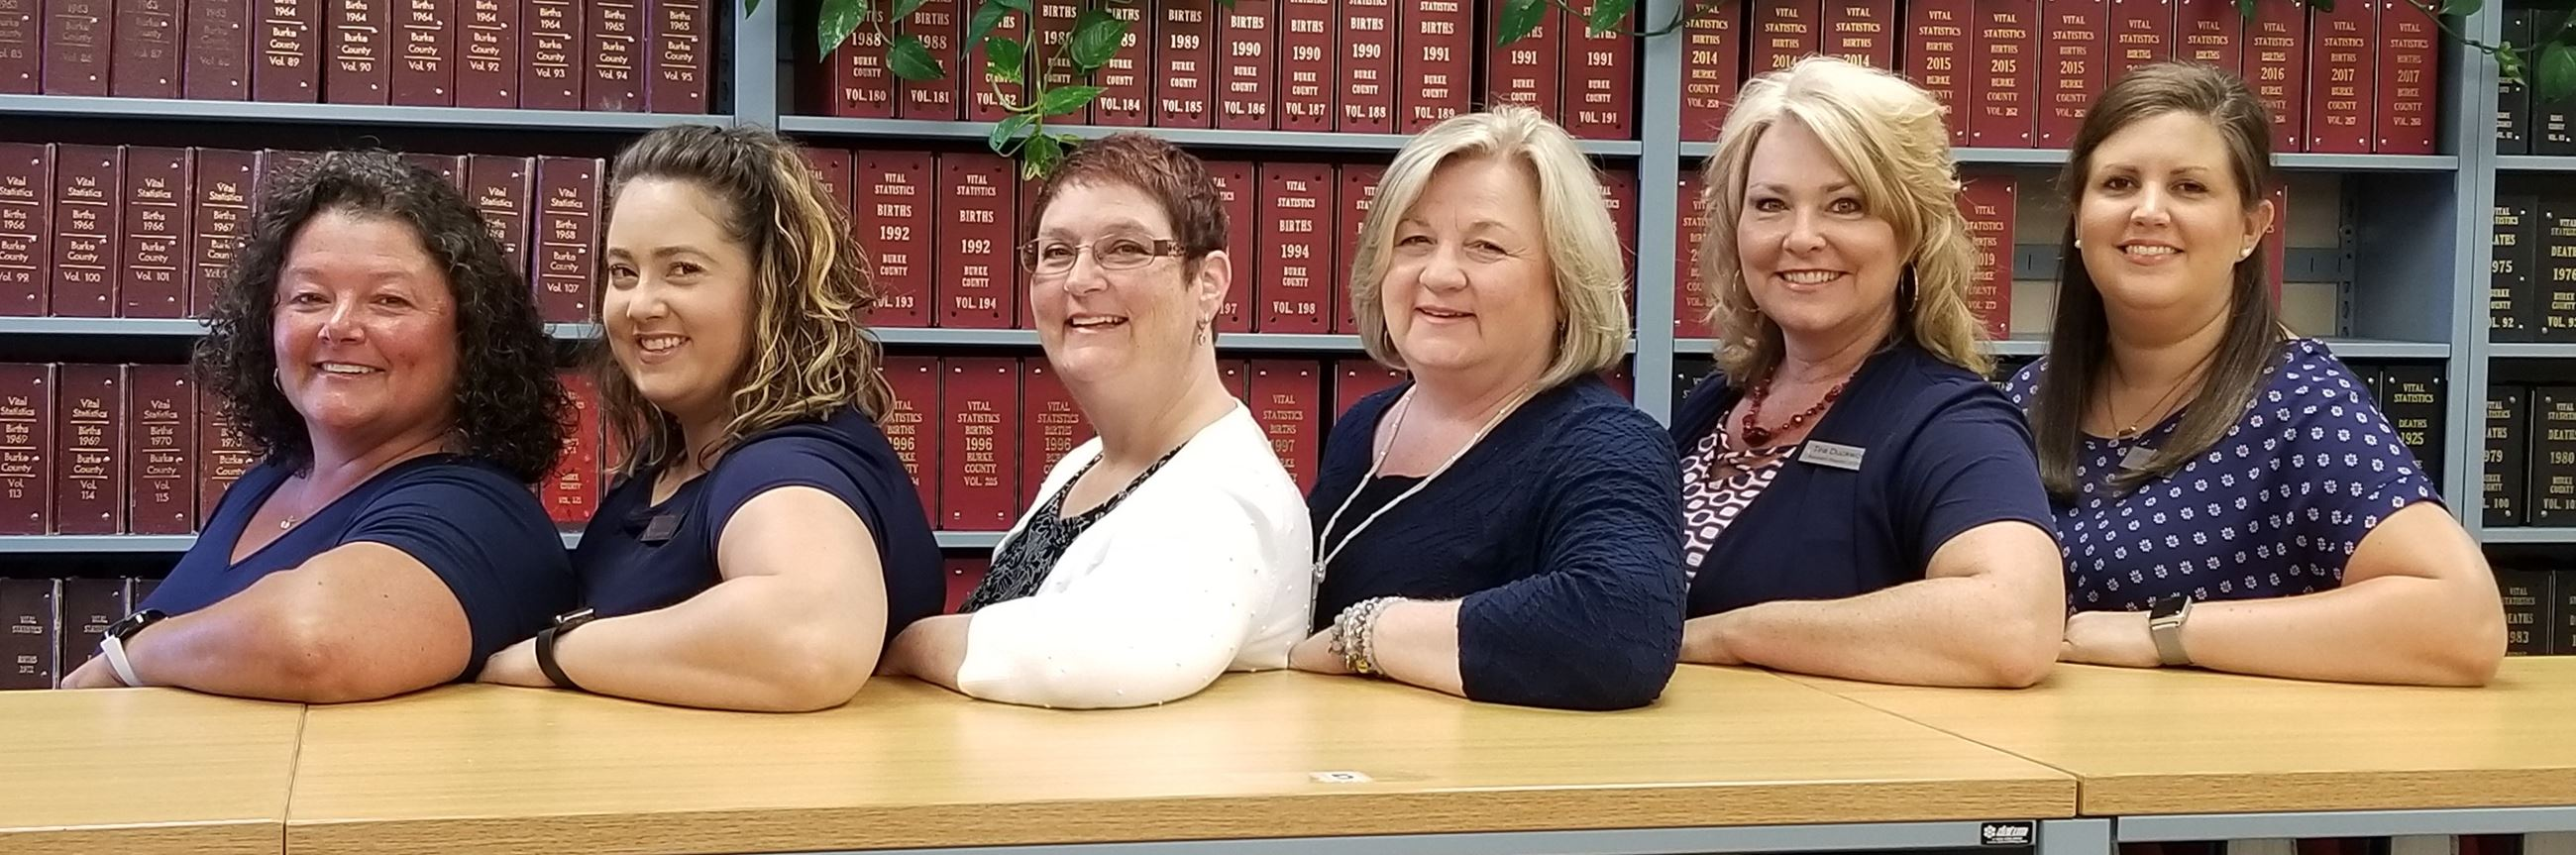 Register of Deeds Staff standing behind a bookcase